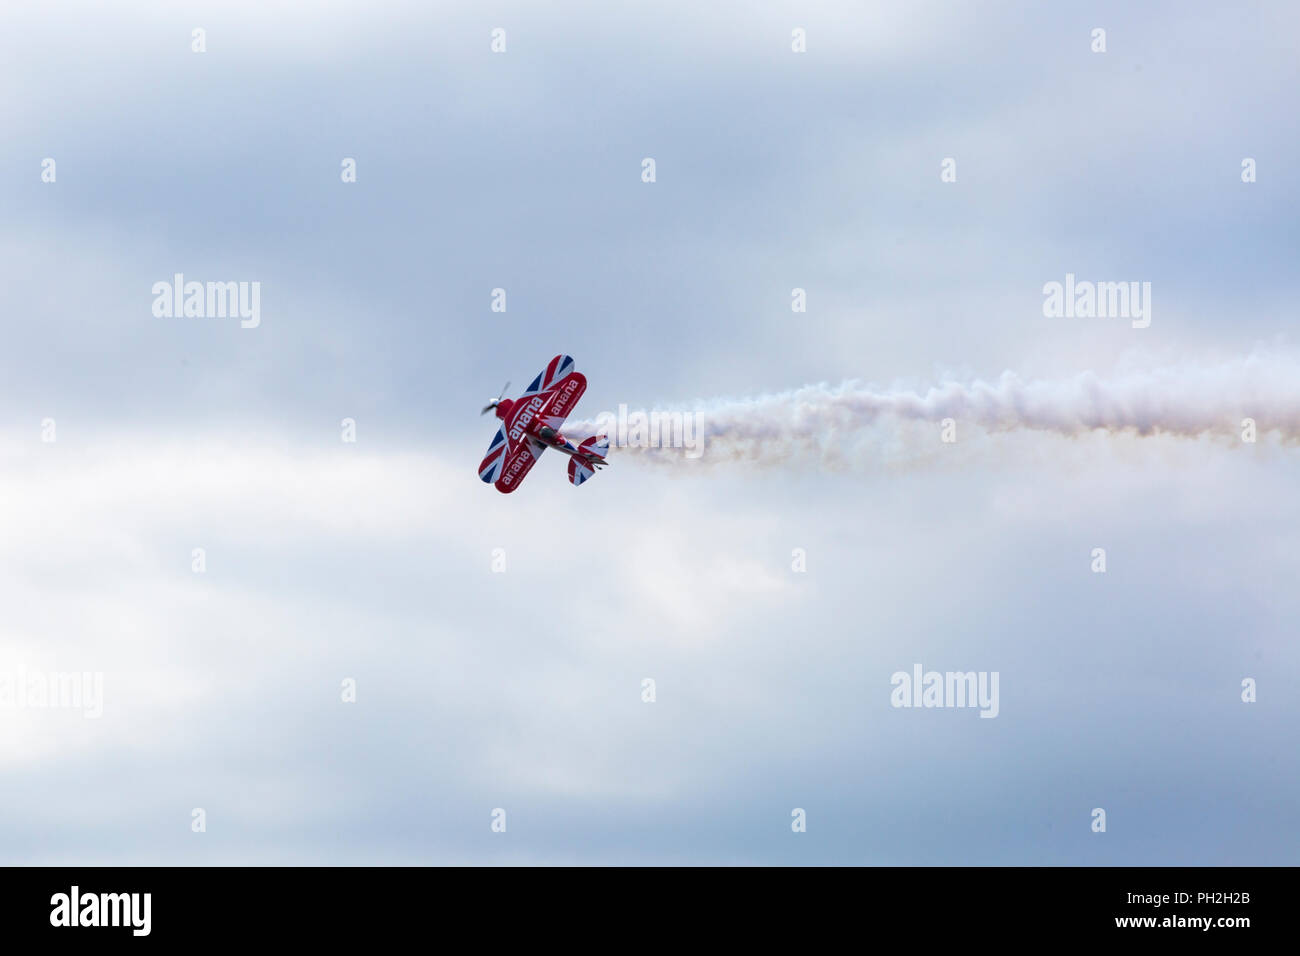 Bournemouth, UK. 30th August 2018. Up to a million people are set to descend on Bournemouth over the next four days as the 11th annual Bournemouth Air Festival gets underway. Lovely sunny day for the start of the festival.  A first for Bournemouth Air Festival, pilot Rich Goodwin showcases the Muscle Biplane Pitts SaS G-EWIZ combining aerial manoeuvres and high energy muscle biplane aerobatics - a special treat in the morning for the opening, ahead of the advertised schedule for the afternoon flying. Credit: Carolyn Jenkins/Alamy Live News - Stock Image